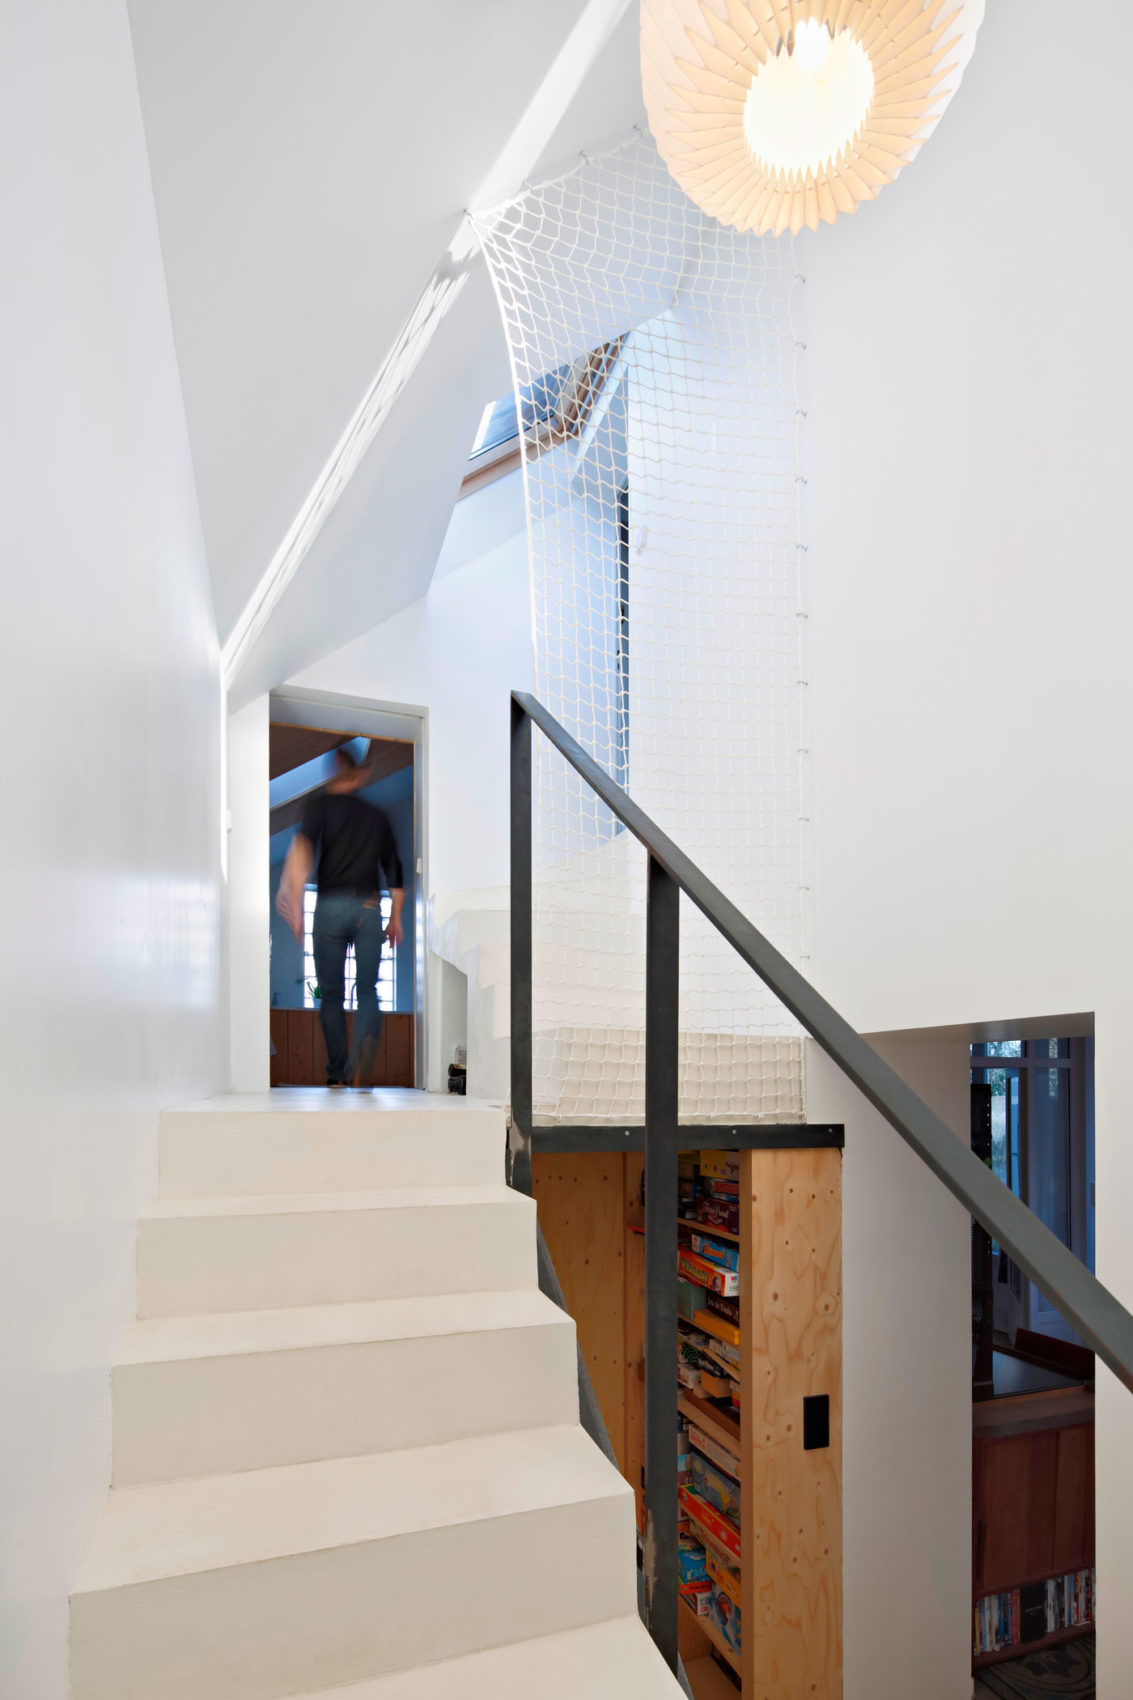 House Extension in Nantes by Mabire Reich Architects (21)